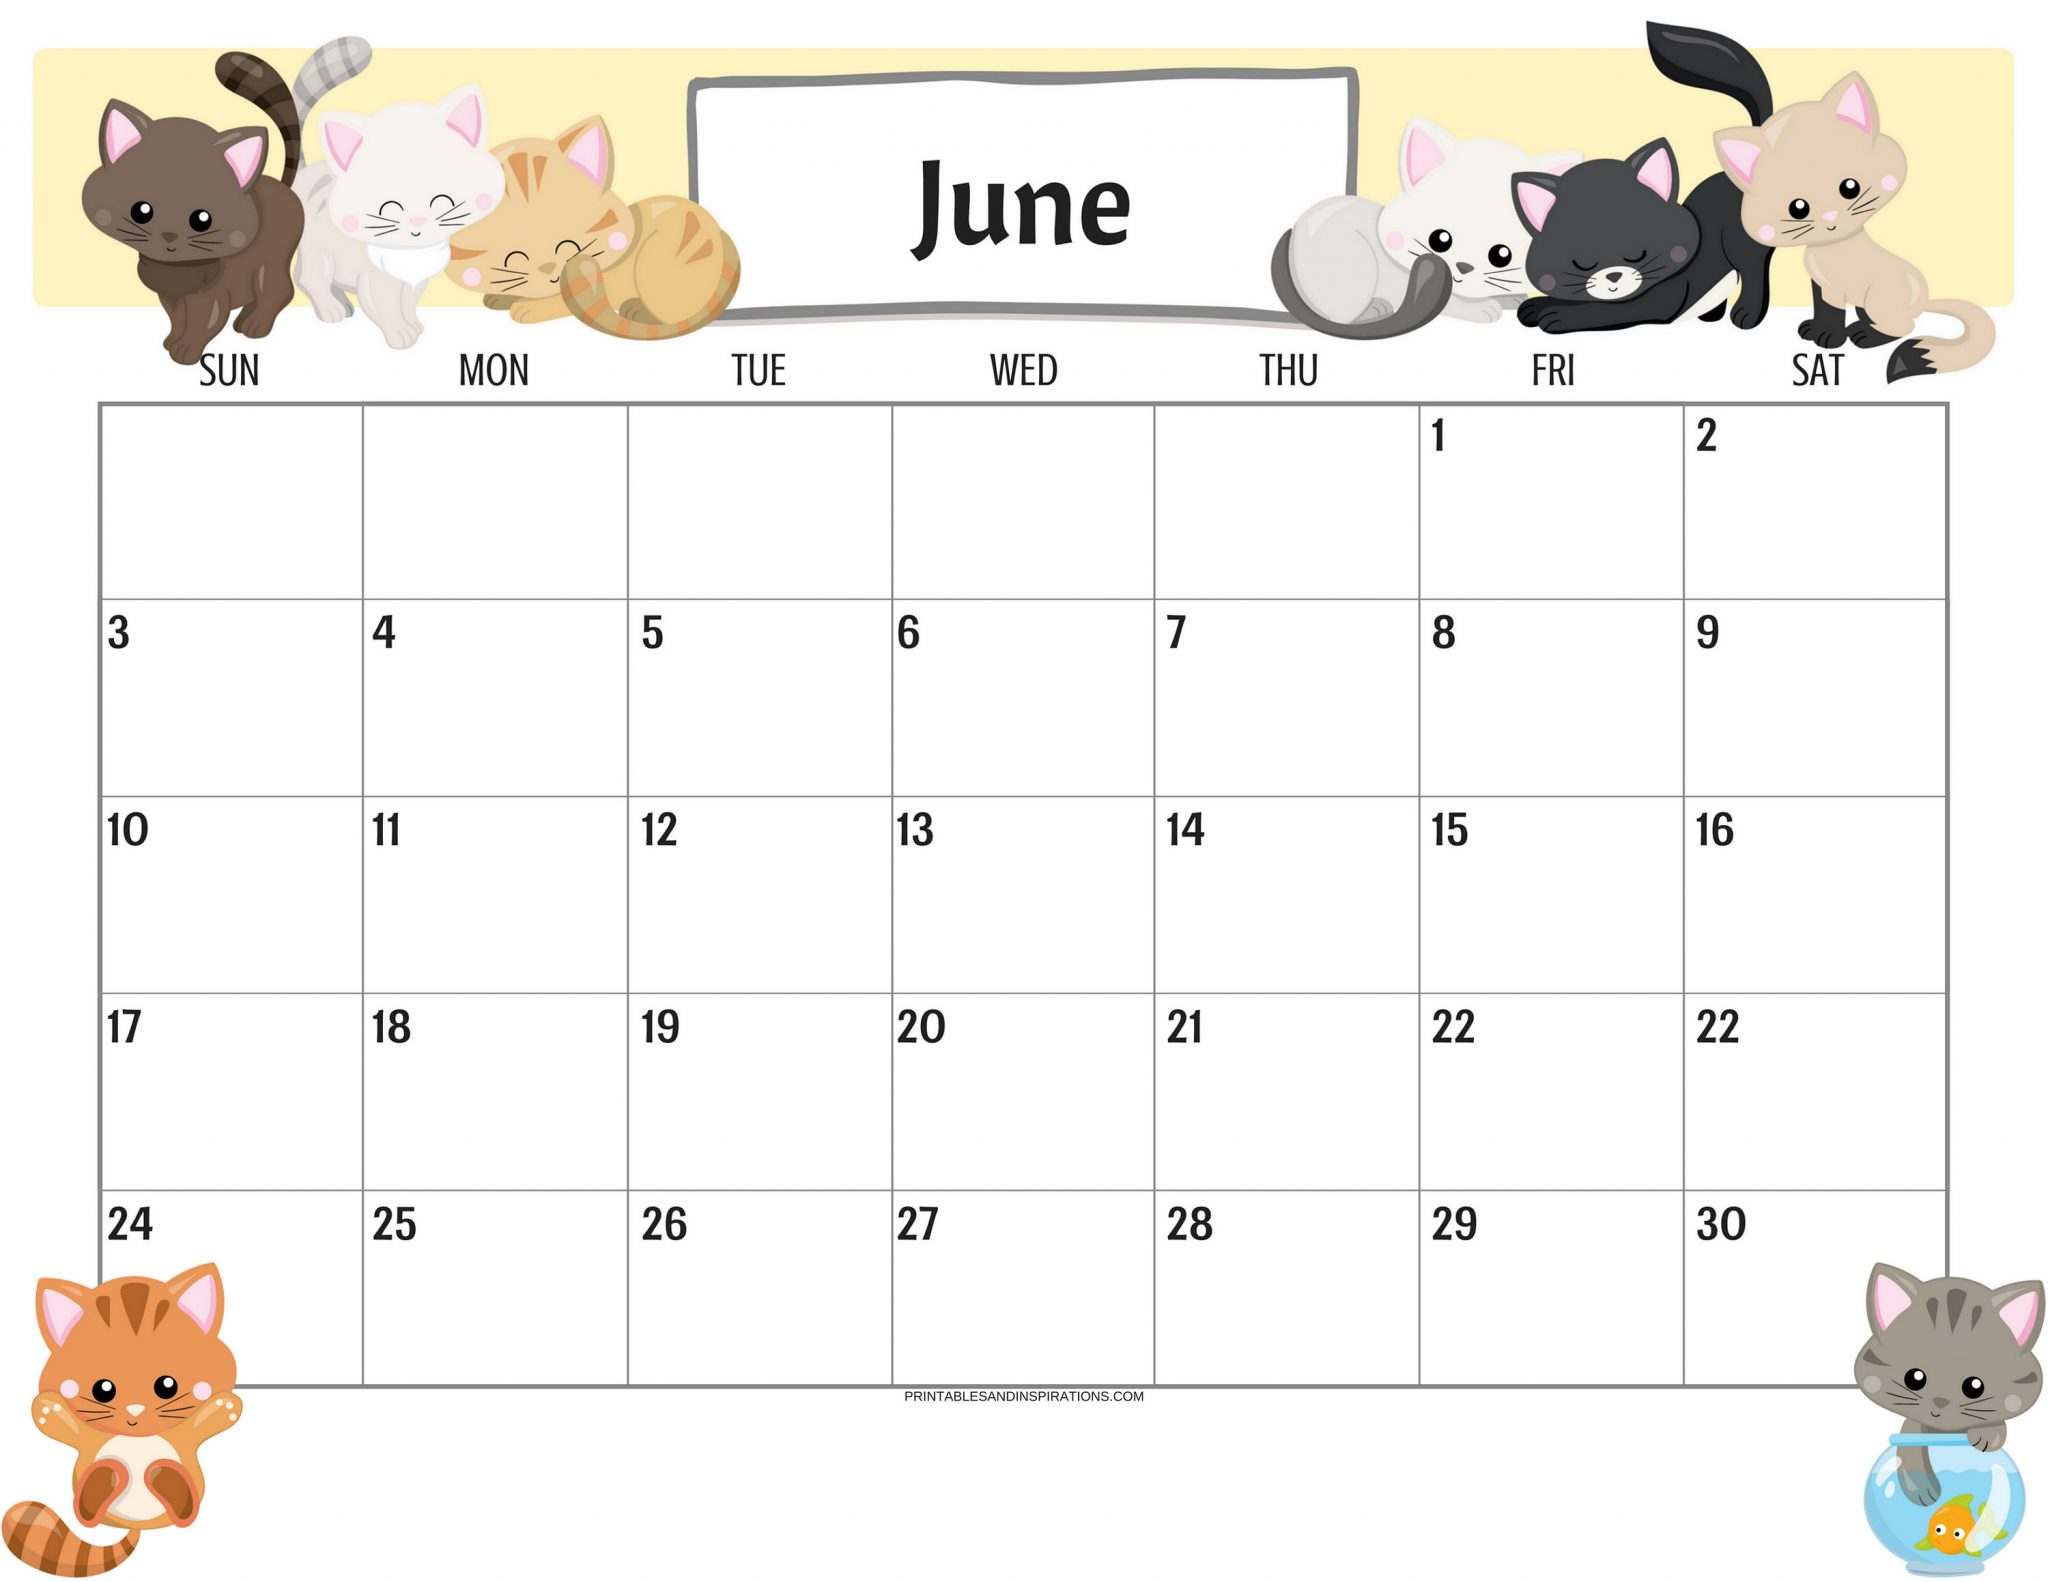 Cute June 2019 Calendar for Kids